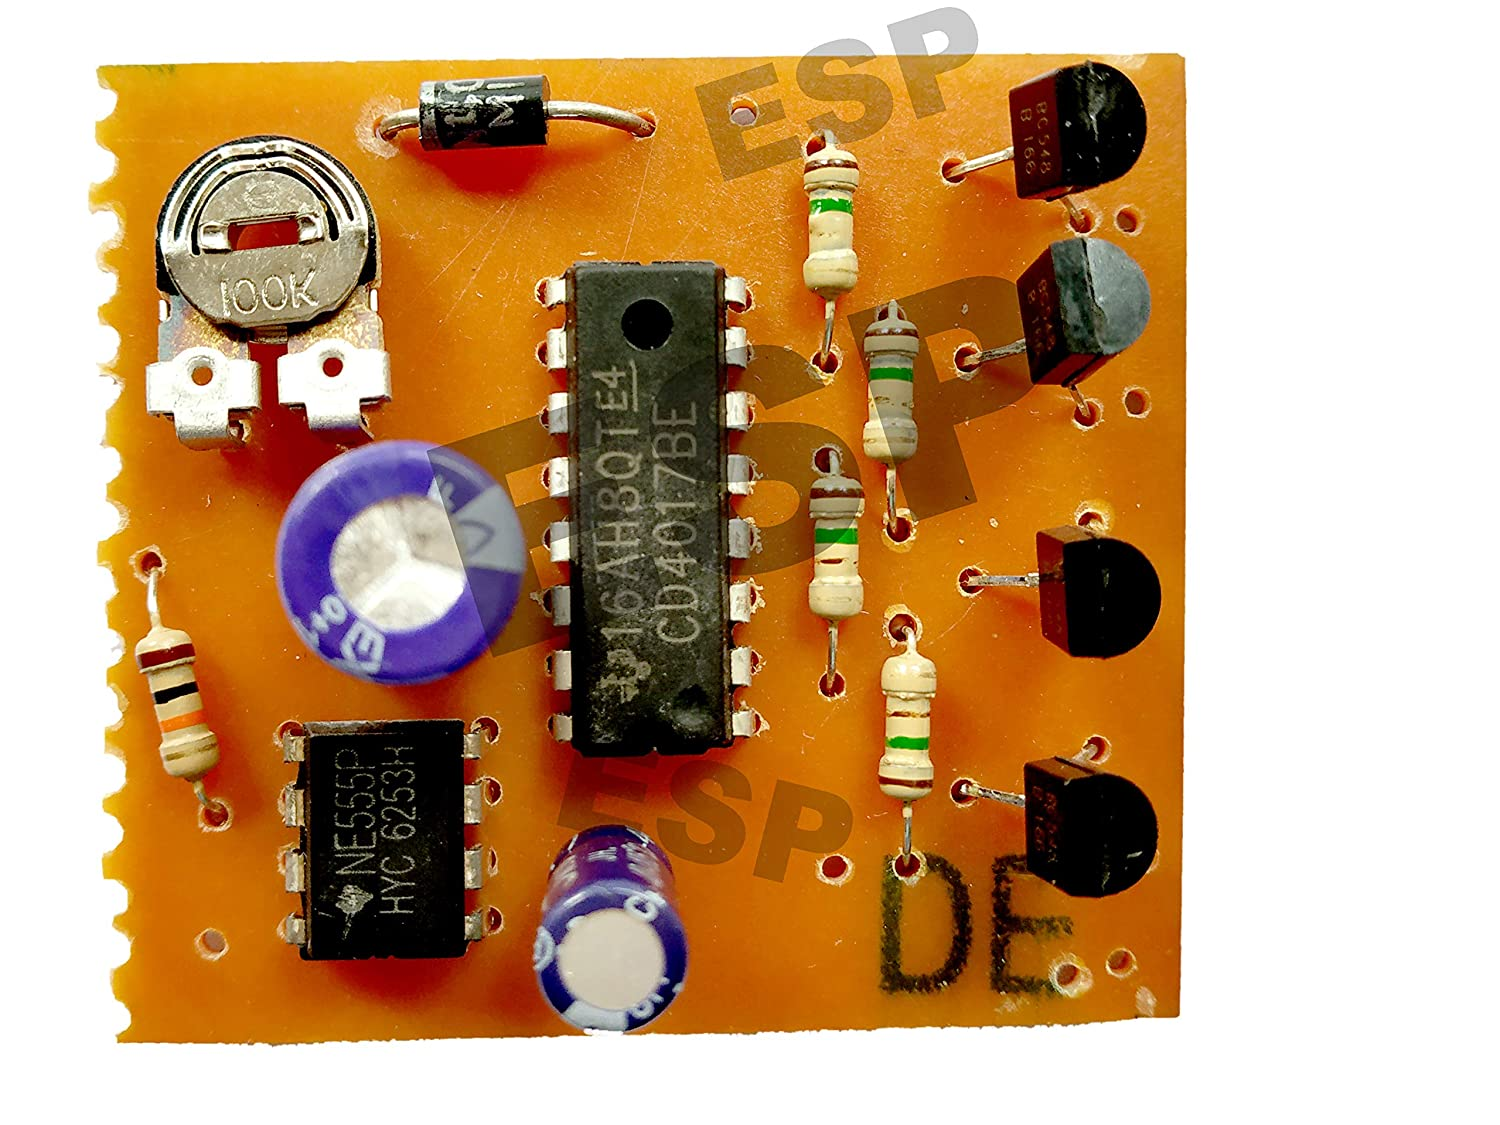 Led Chaser Circuit Running Light Decad Counter For Diagram Using Ic 555 And Cd 4017 Electronic Projects Cd4017 Timer Industrial Scientific